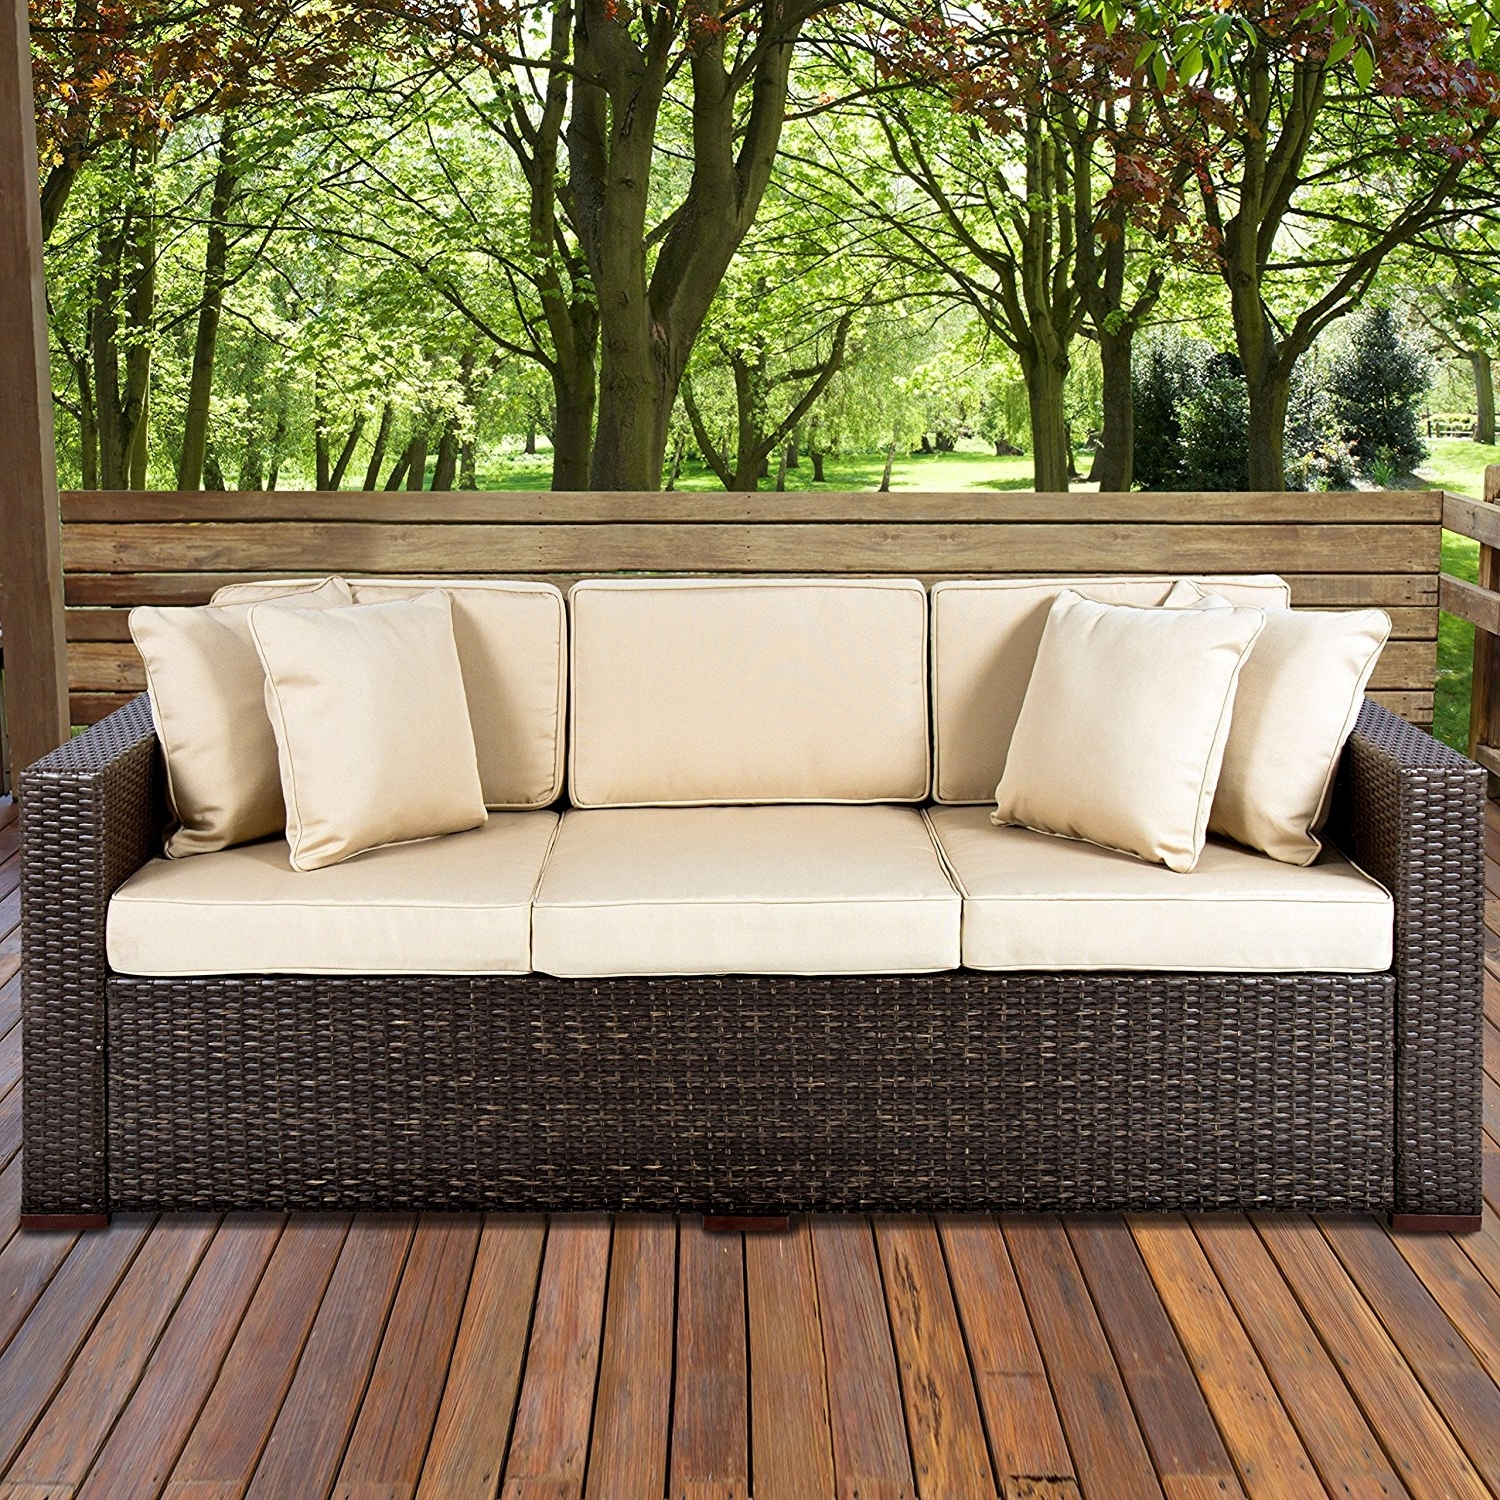 Sofa : Patio Furniture White Wicker Outdoor Furniture Wicker With Latest Vancouver Bc Canada Sectional Sofas (View 9 of 15)